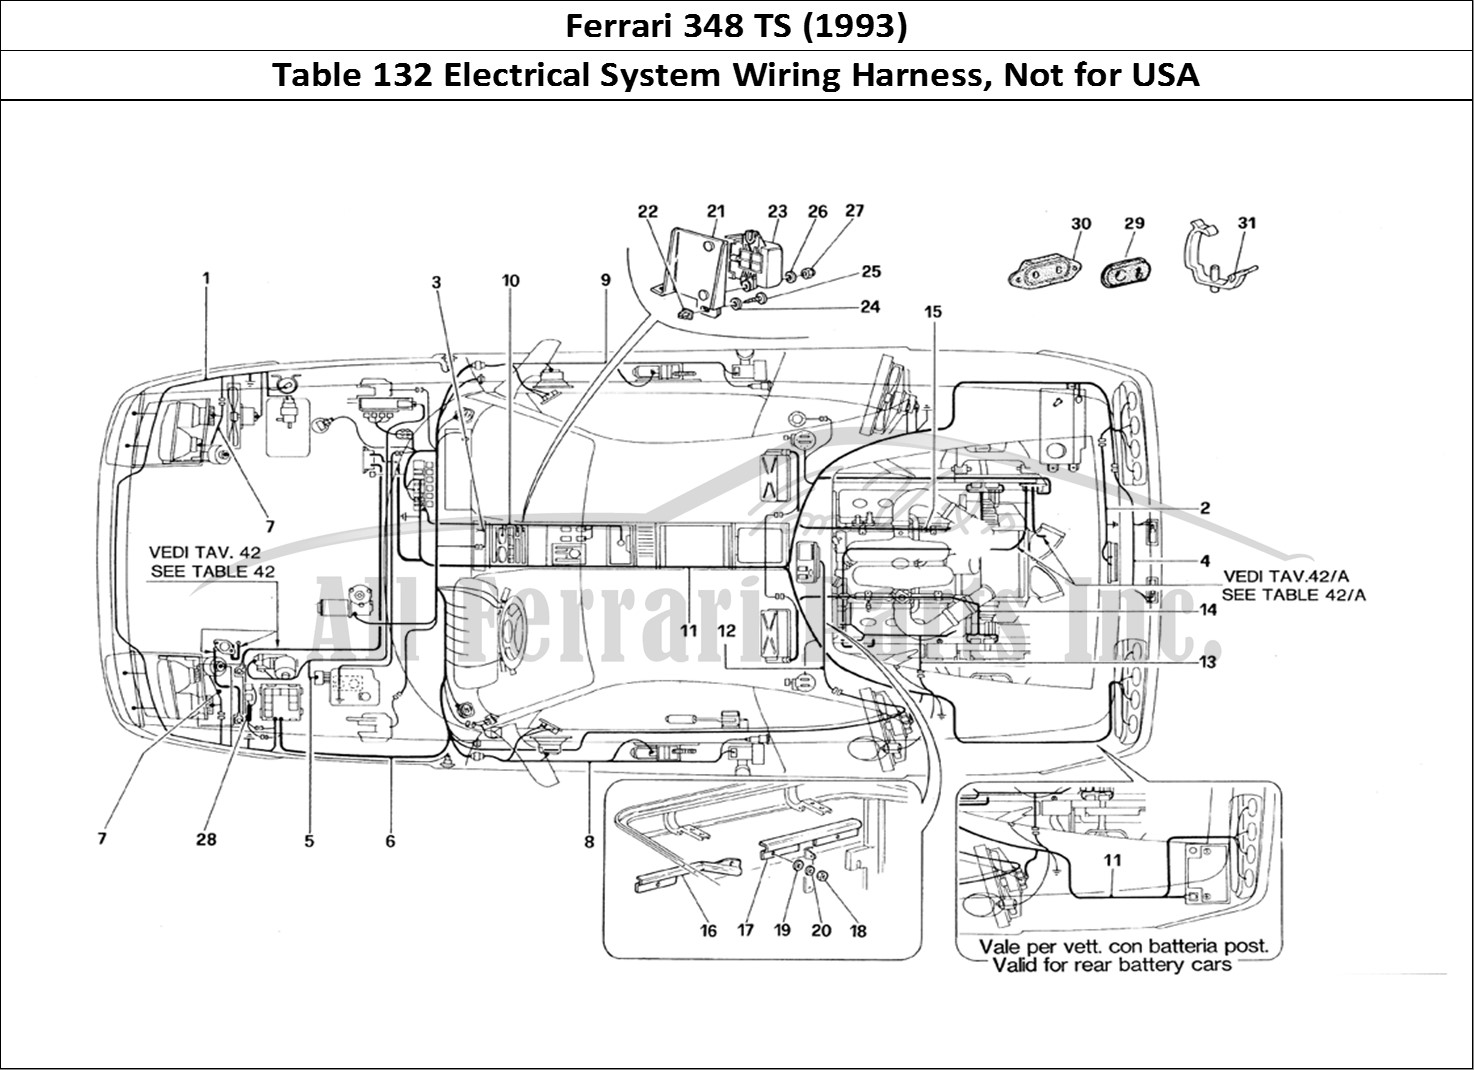 Buy original Ferrari 348 TS (1993) 132 Electrical System